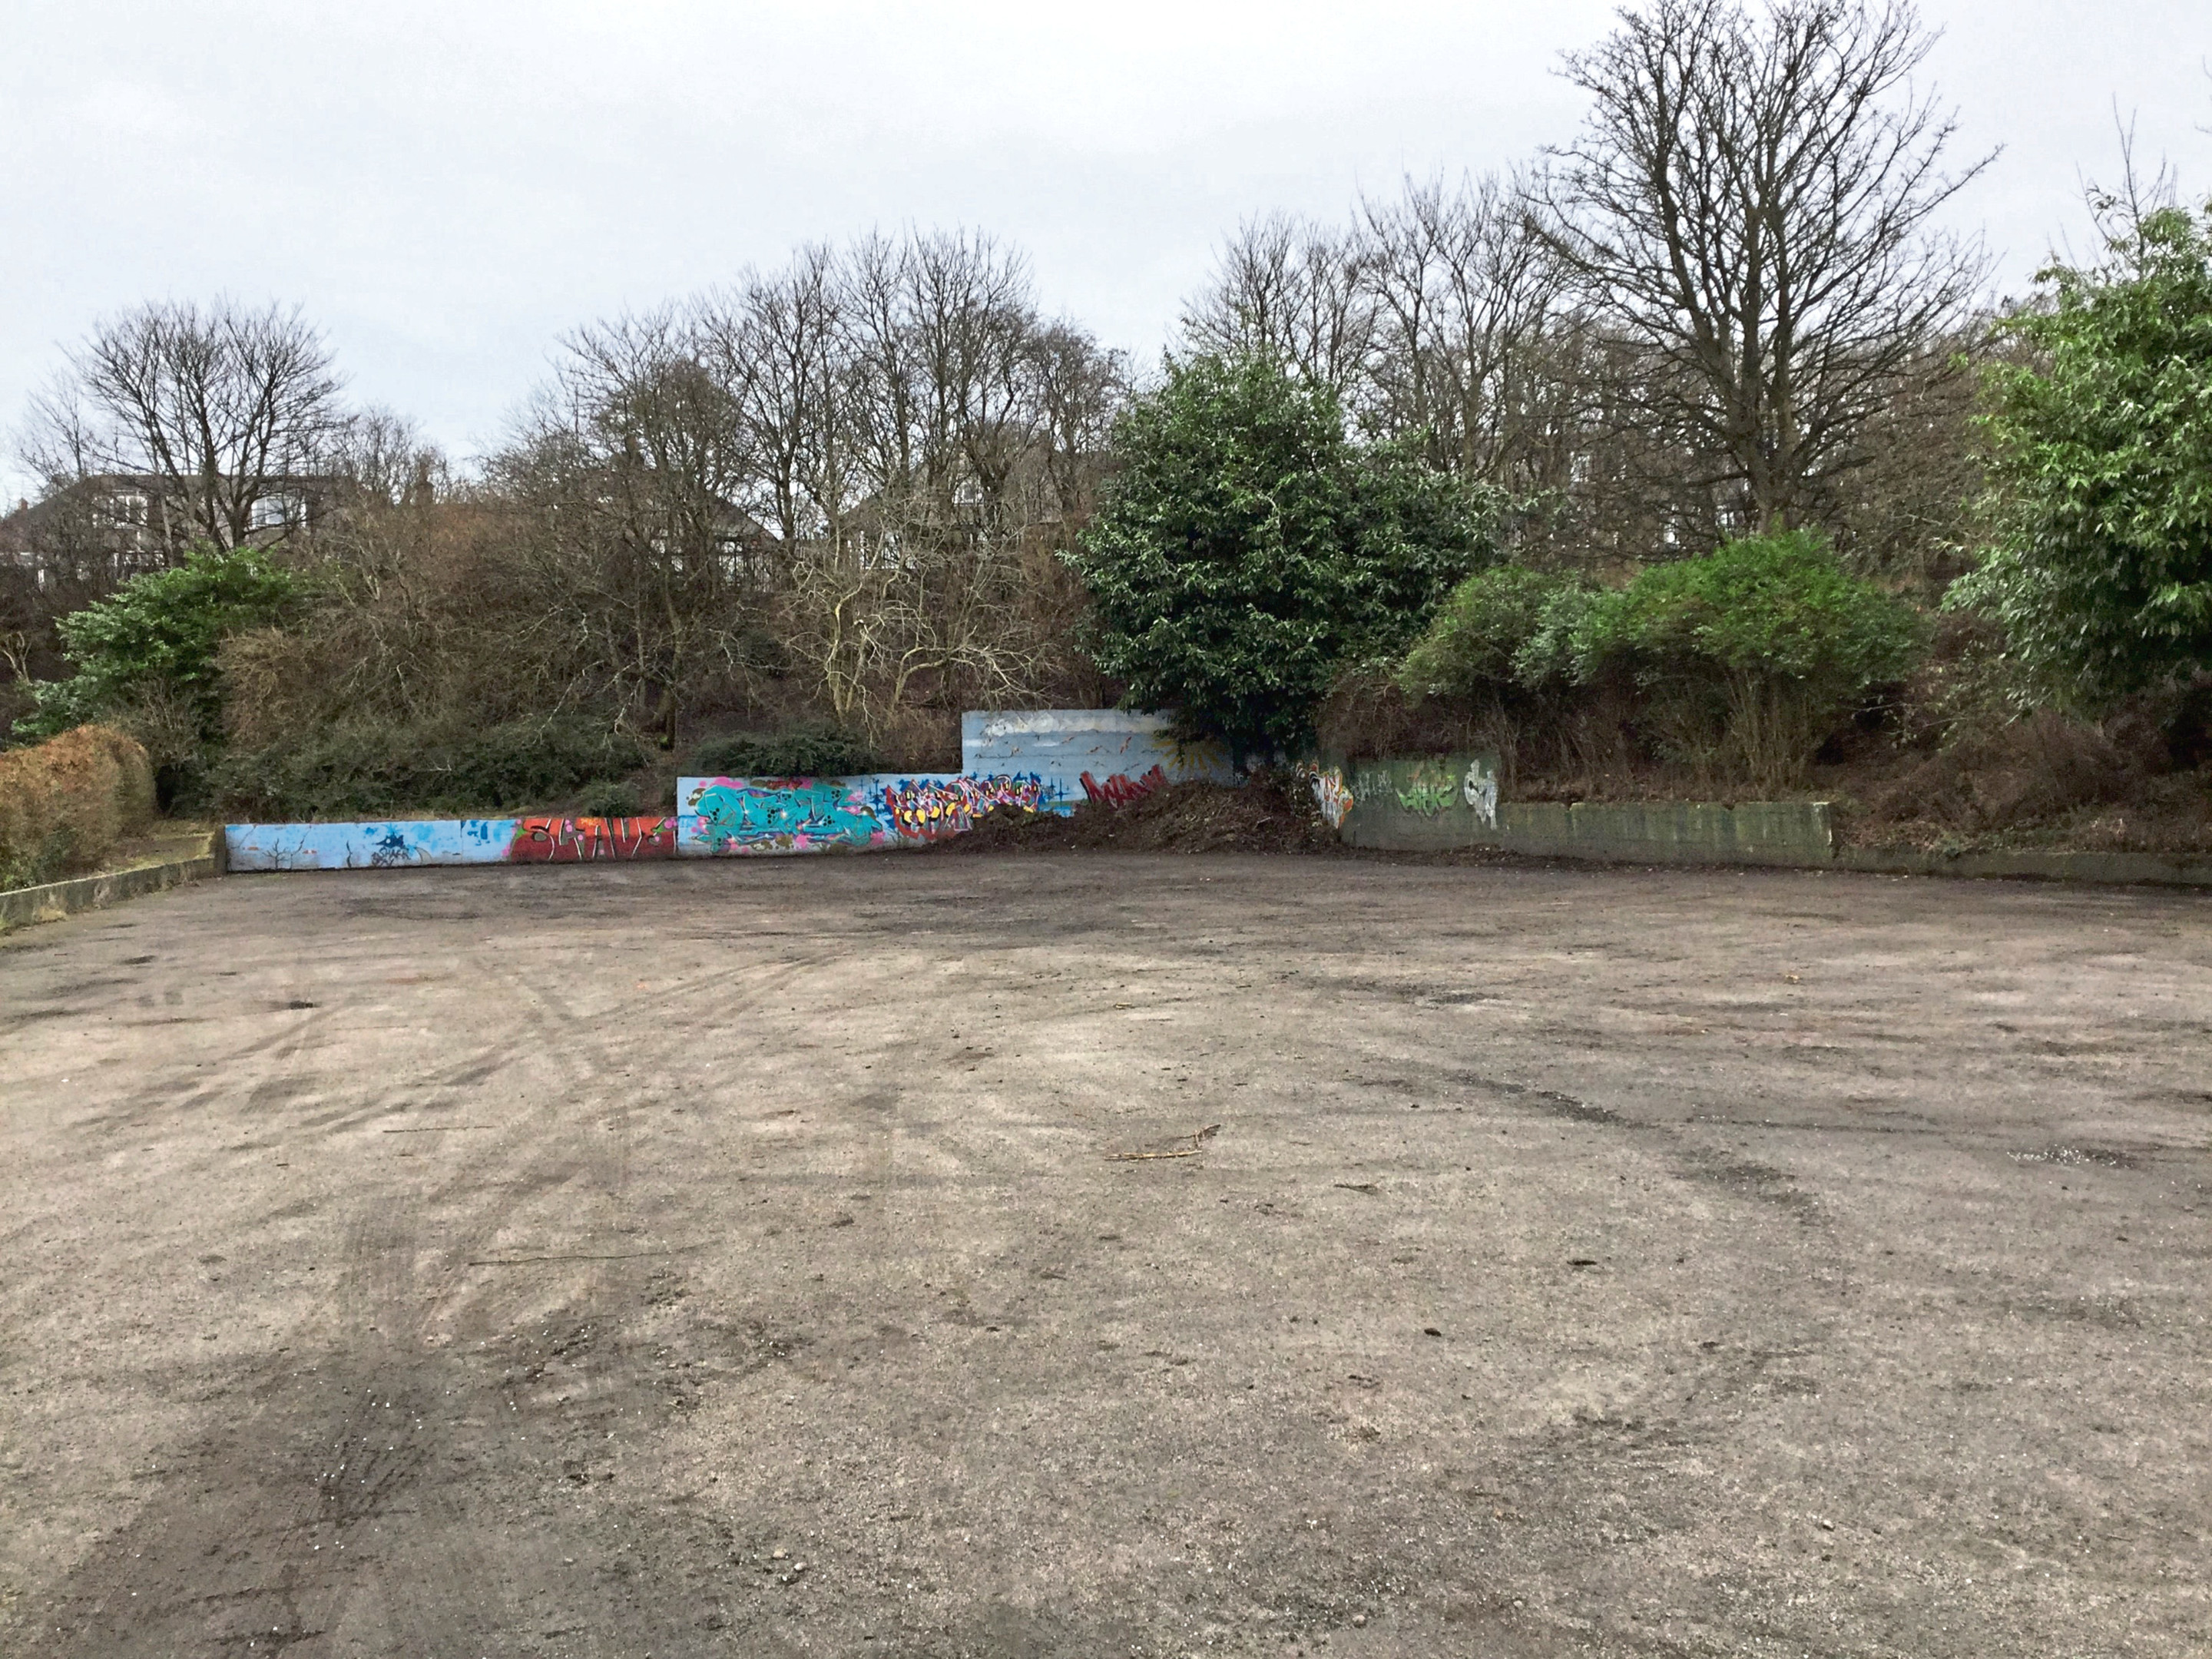 The money will be spent resurfacing Sunnybank Park so it can be used for a host of activities, such as an outdoor gym, football, basketball and pedal go-karting